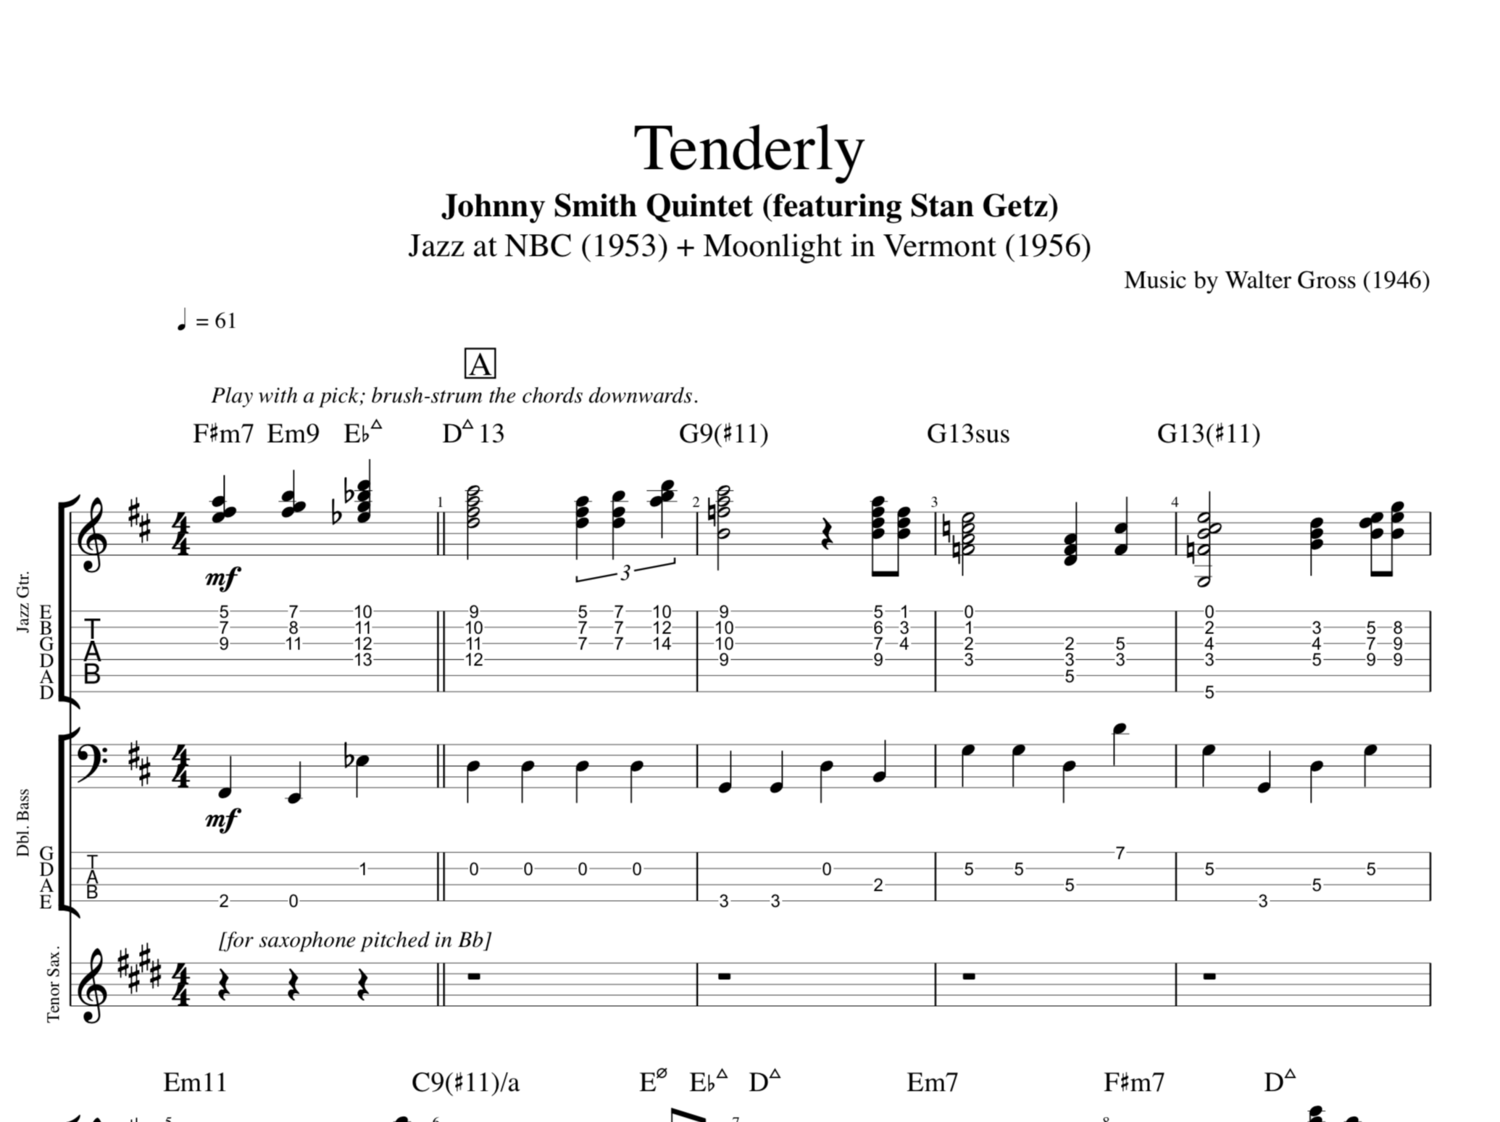 Johnny guitar chords image collections guitar chords examples tenderly by johnny smith quintet featuring stan getz guitar tenderly by johnny smith quintet featuring stan hexwebz Gallery